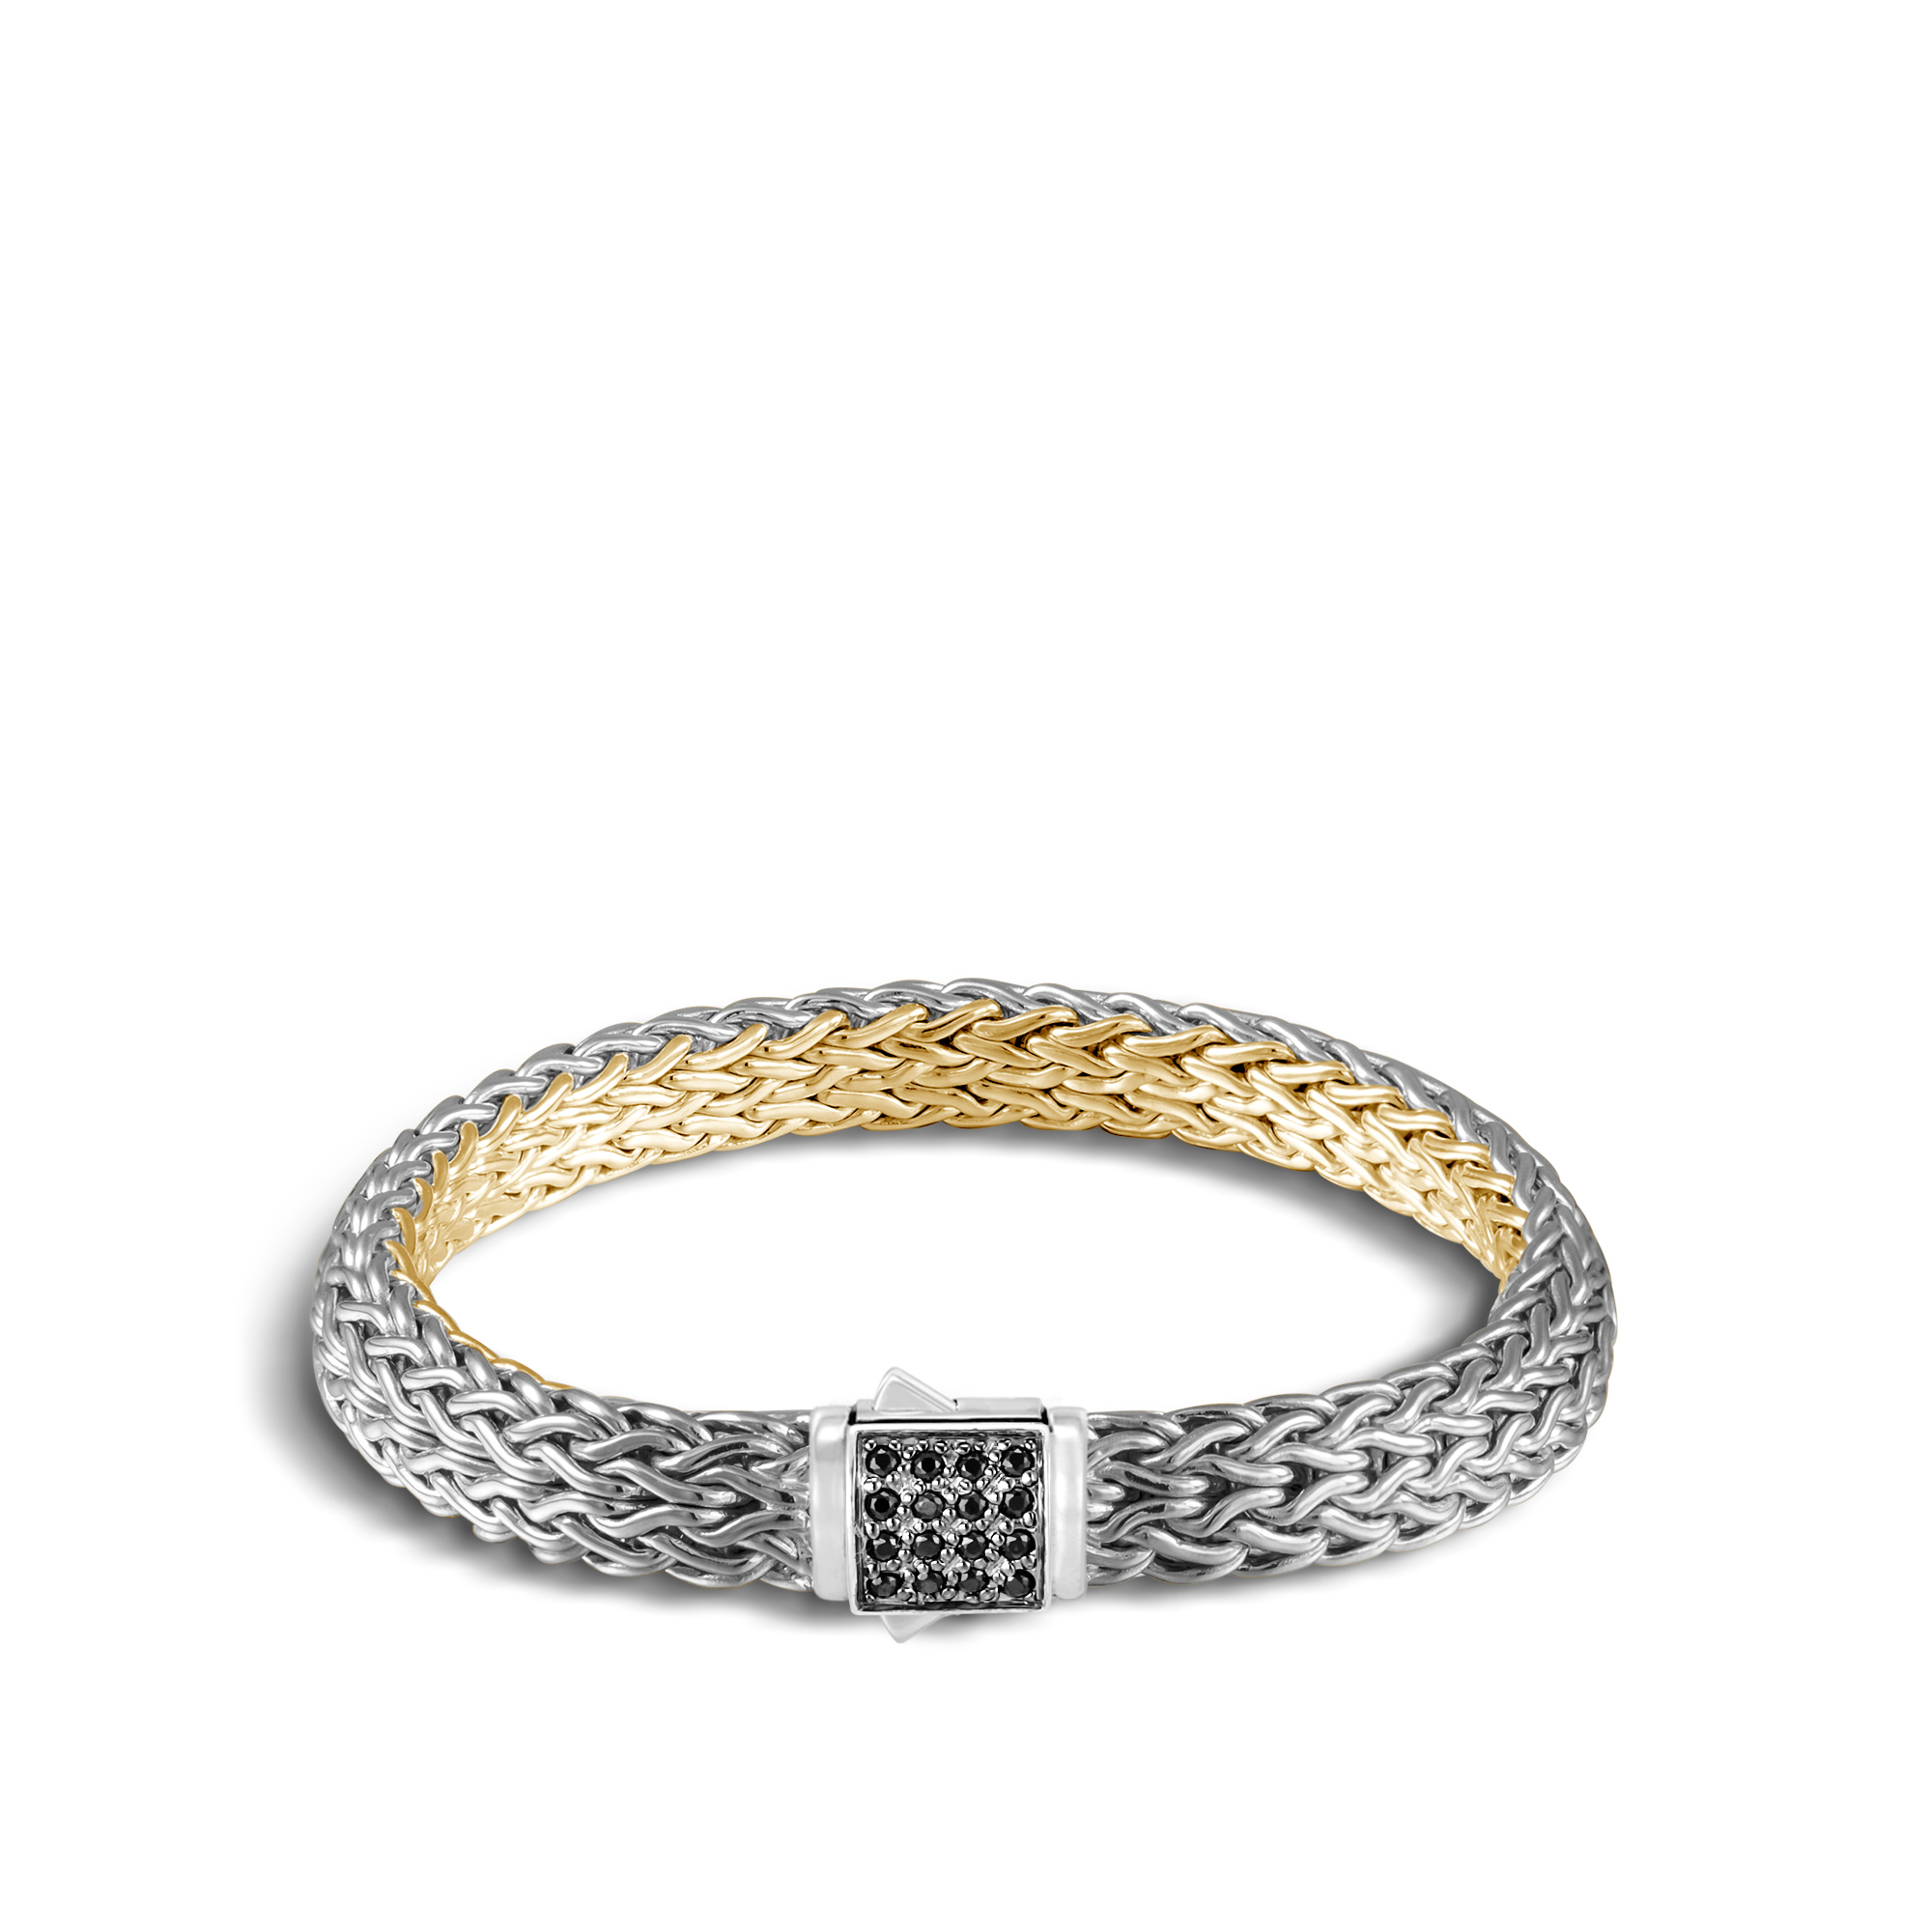 Reversible 7.5MM Bracelet in Silver, 18K Gold , Gemstone and Dia, Black Sapphire, large